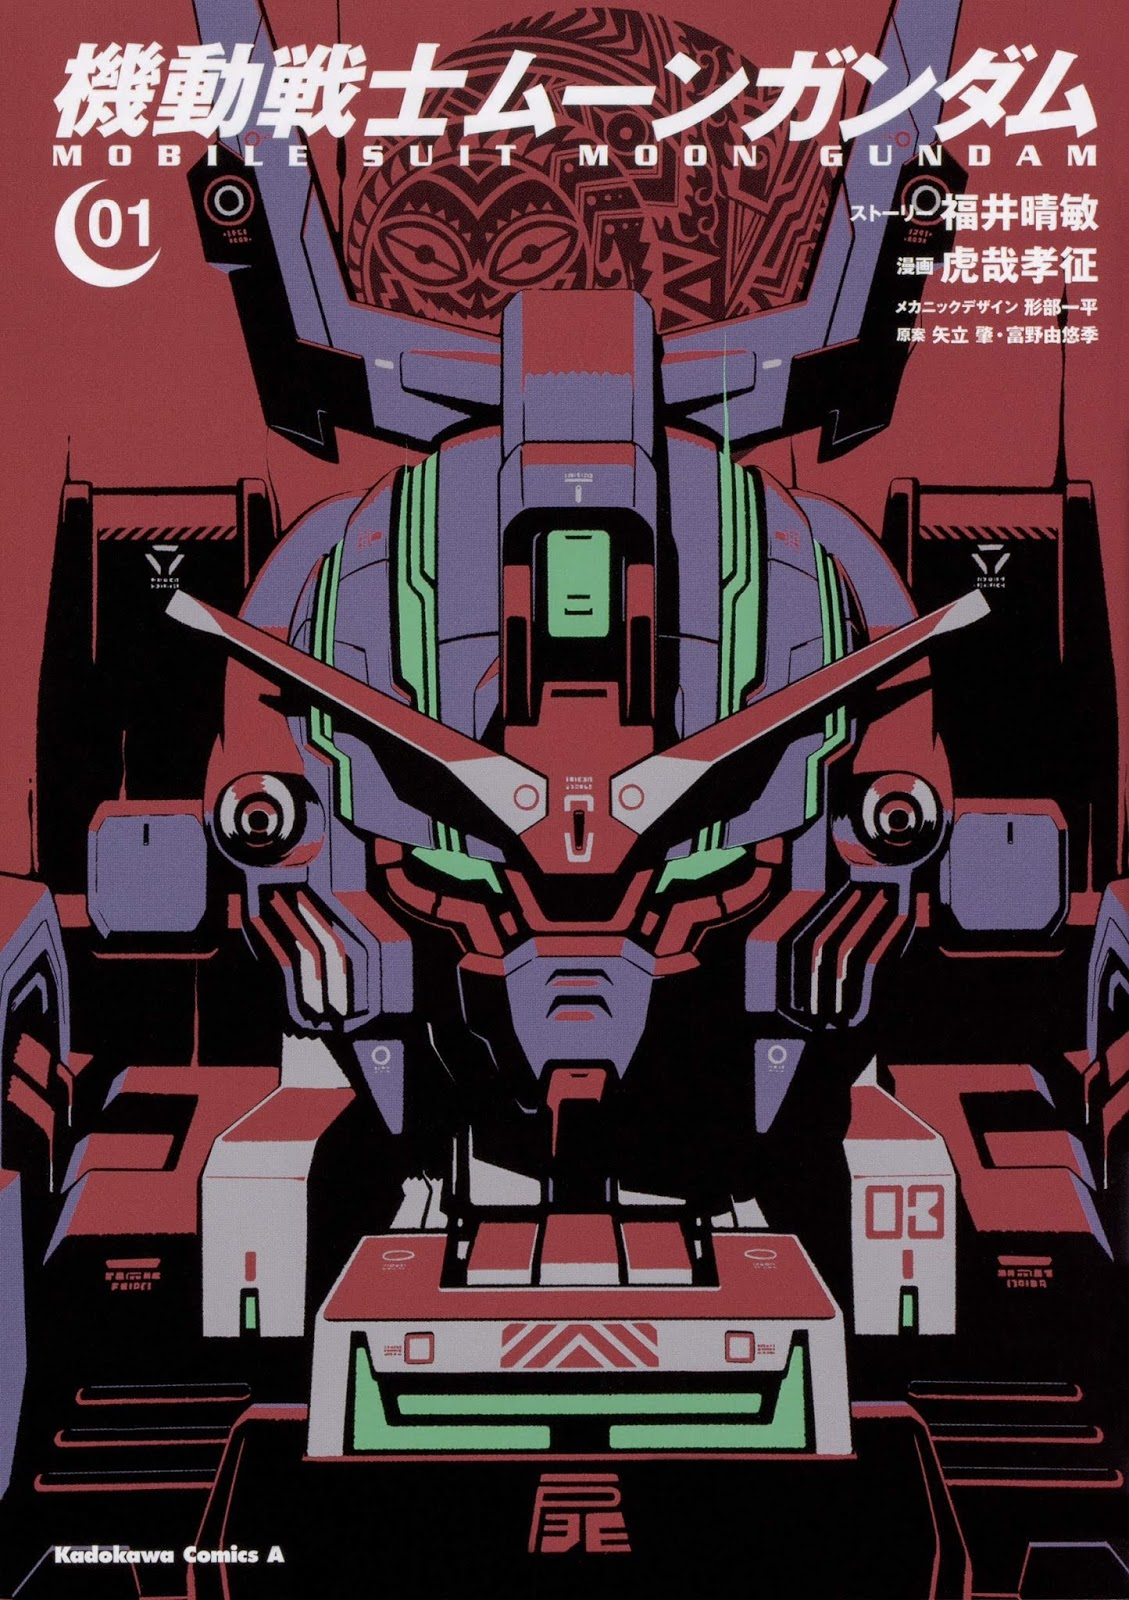 Mobile Suit Moon Gundam Vol. 1 - Release Info - Gundam Kits Collection News and Reviews